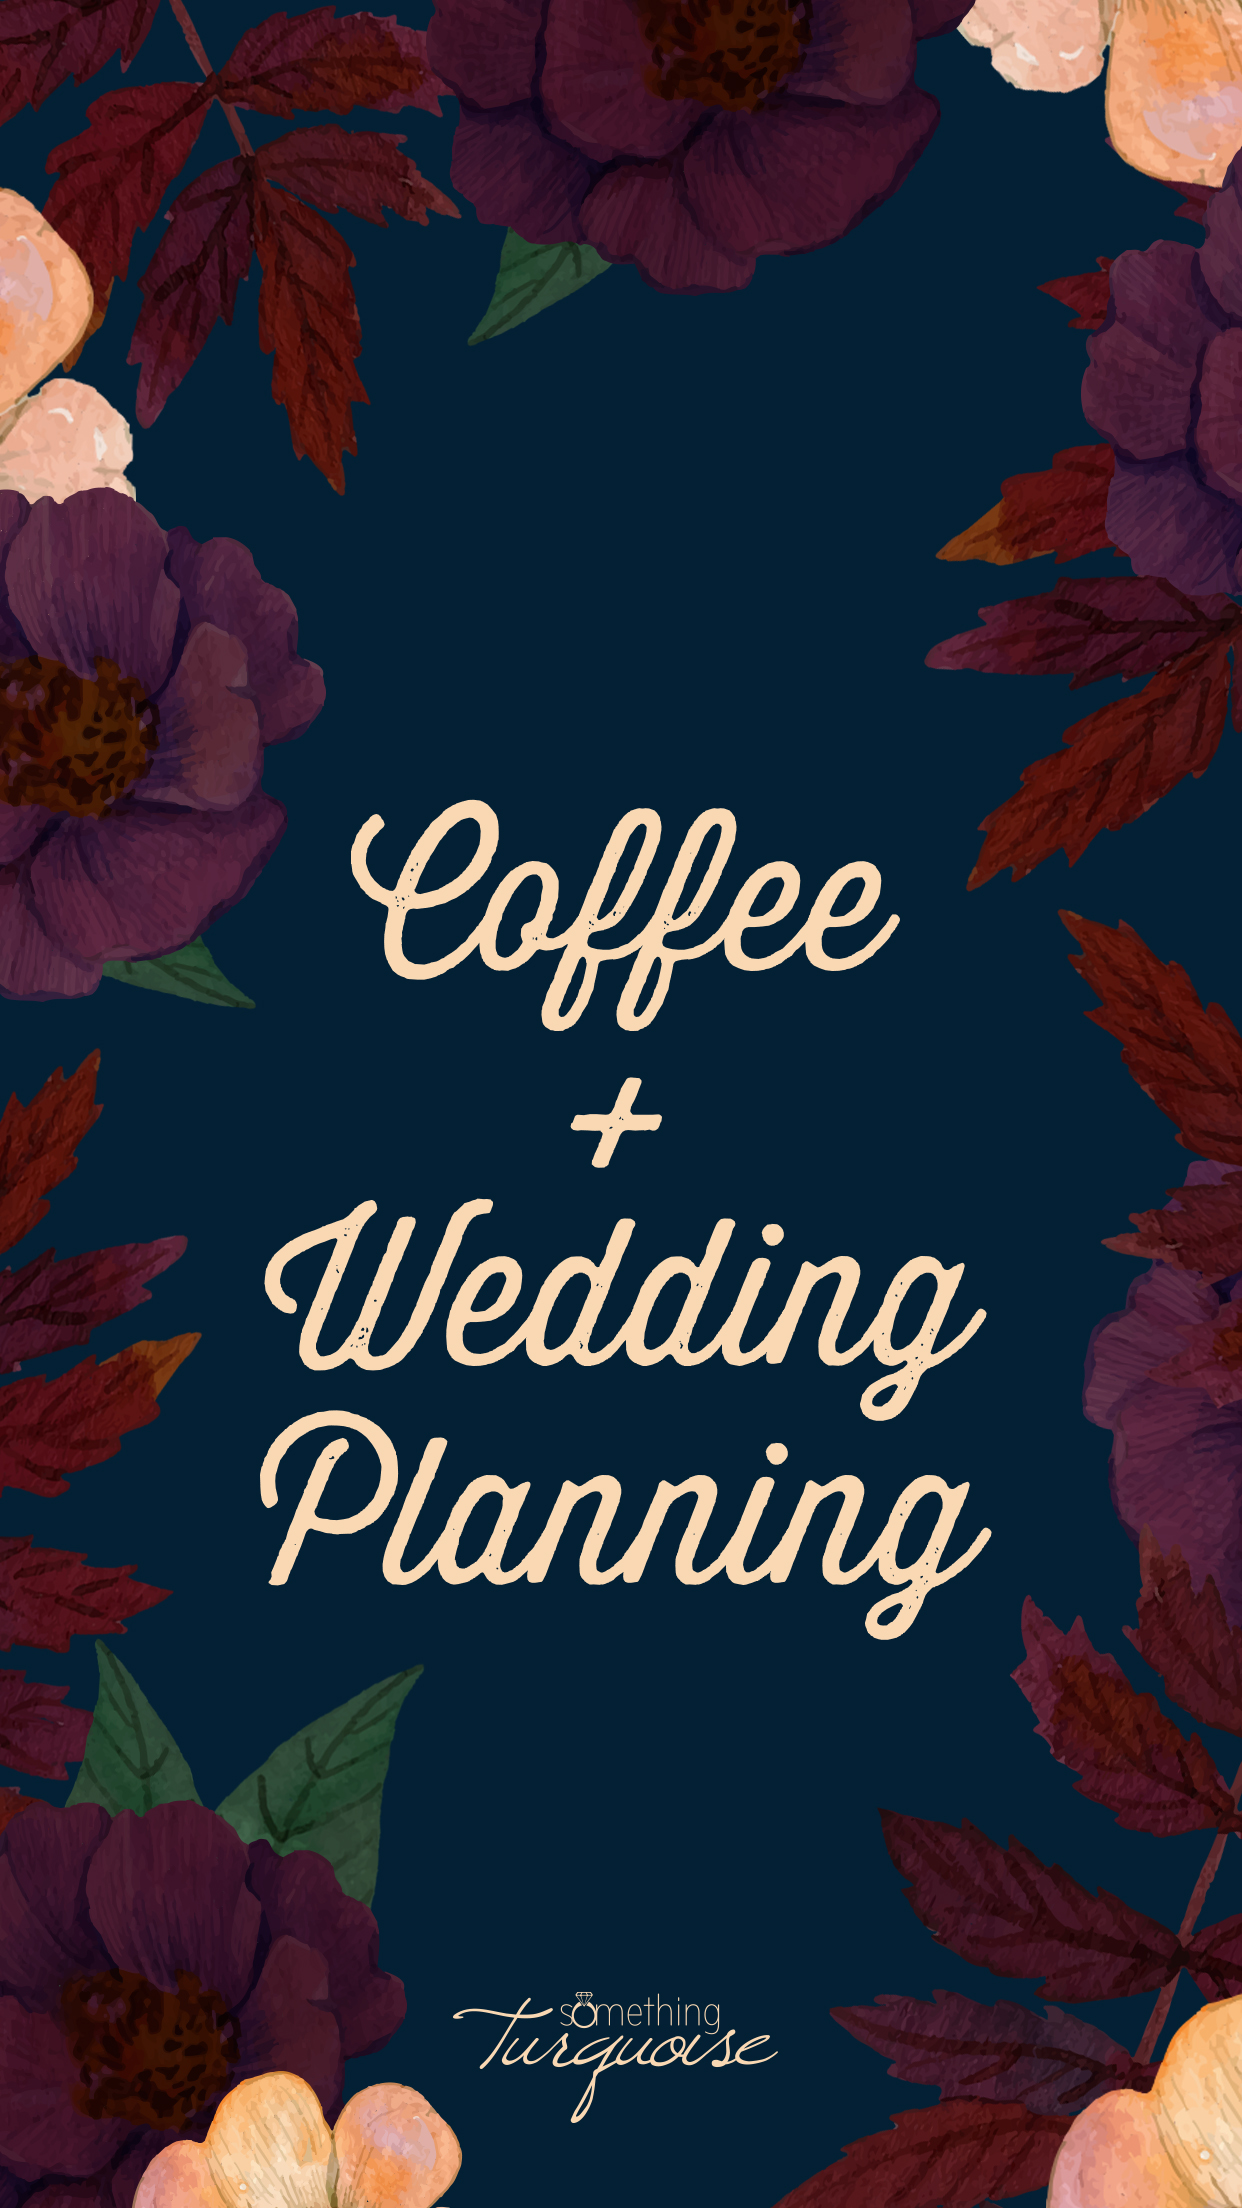 This Coffee and Wedding Planning iPhone wallpaper is SO cute!